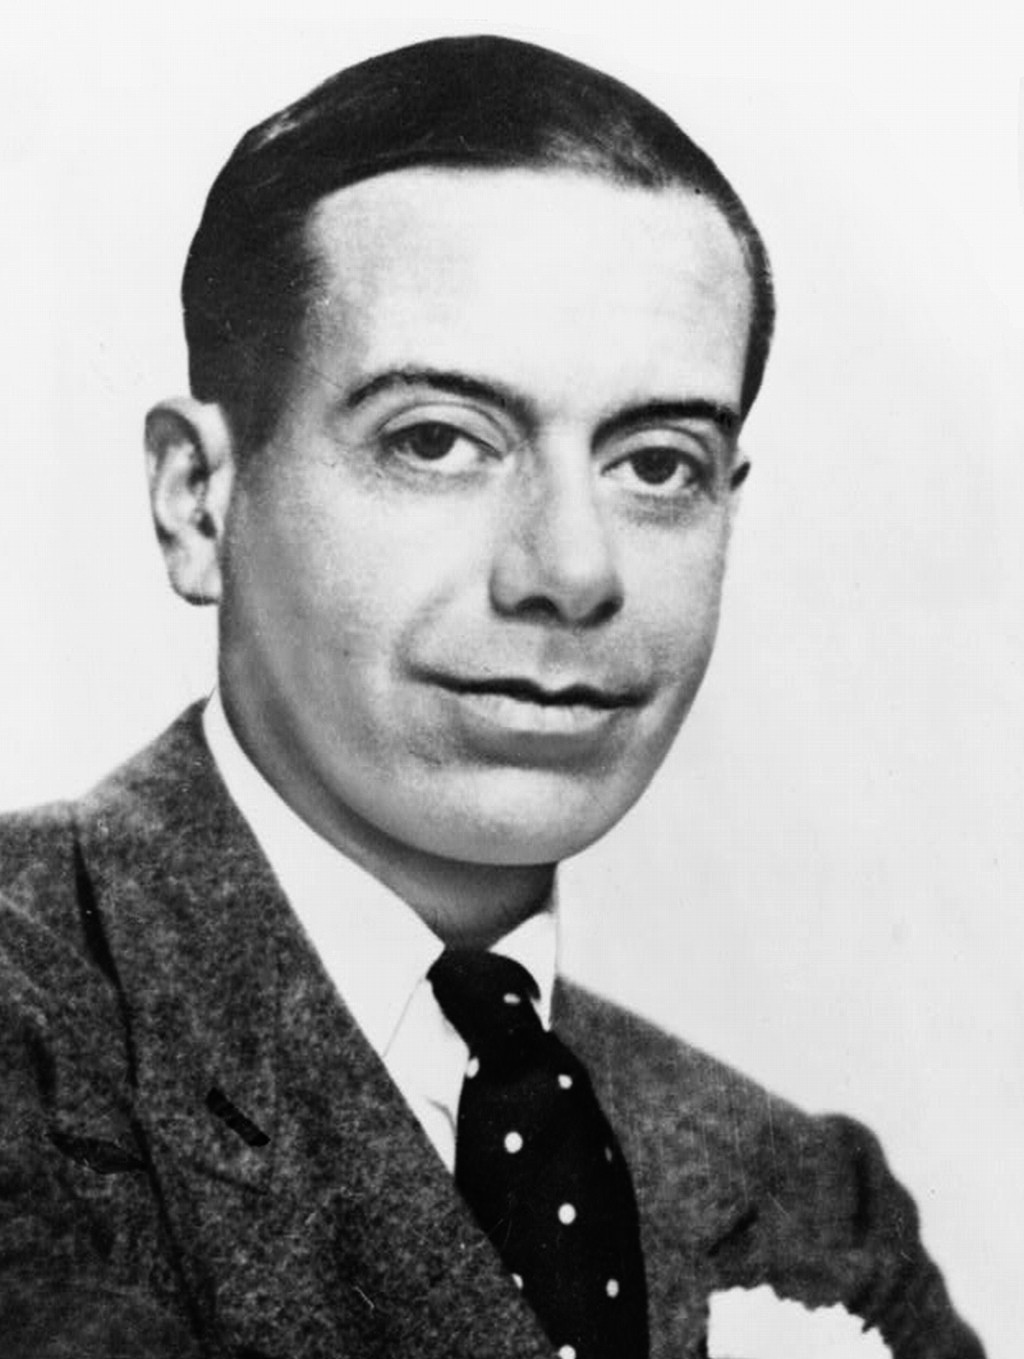 Depiction of Cole Porter